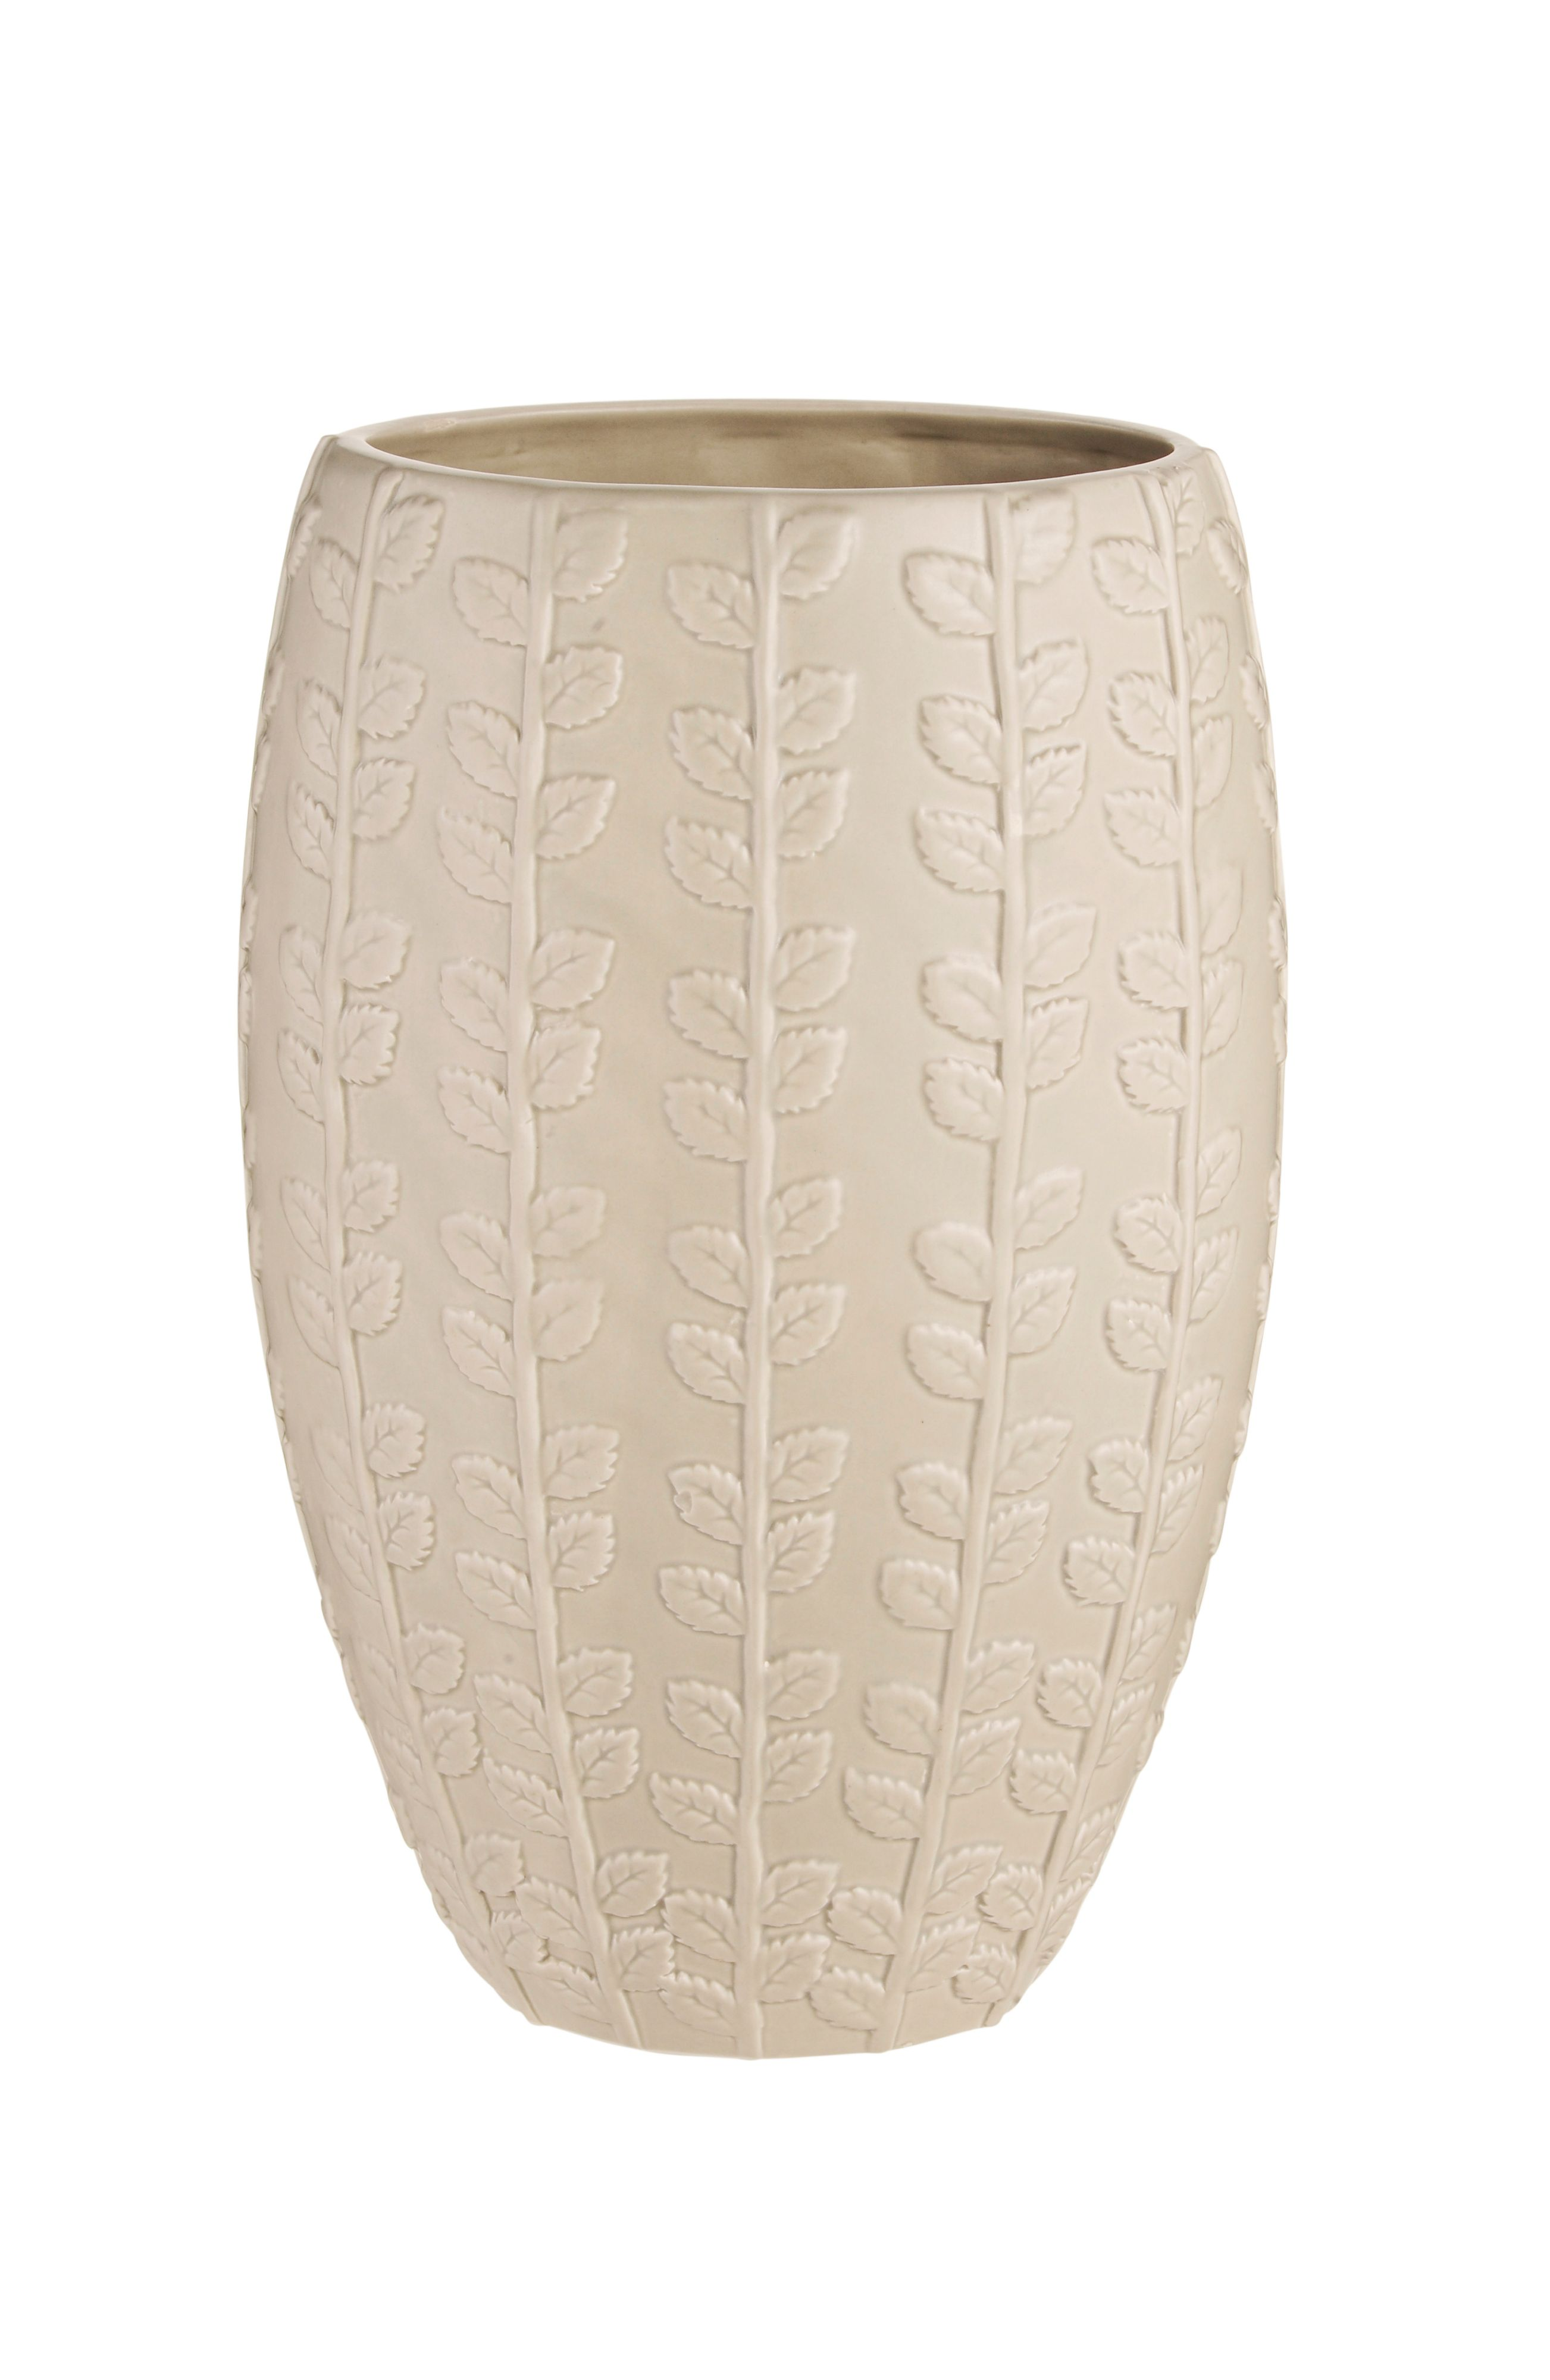 Cream embossed leaf design vase